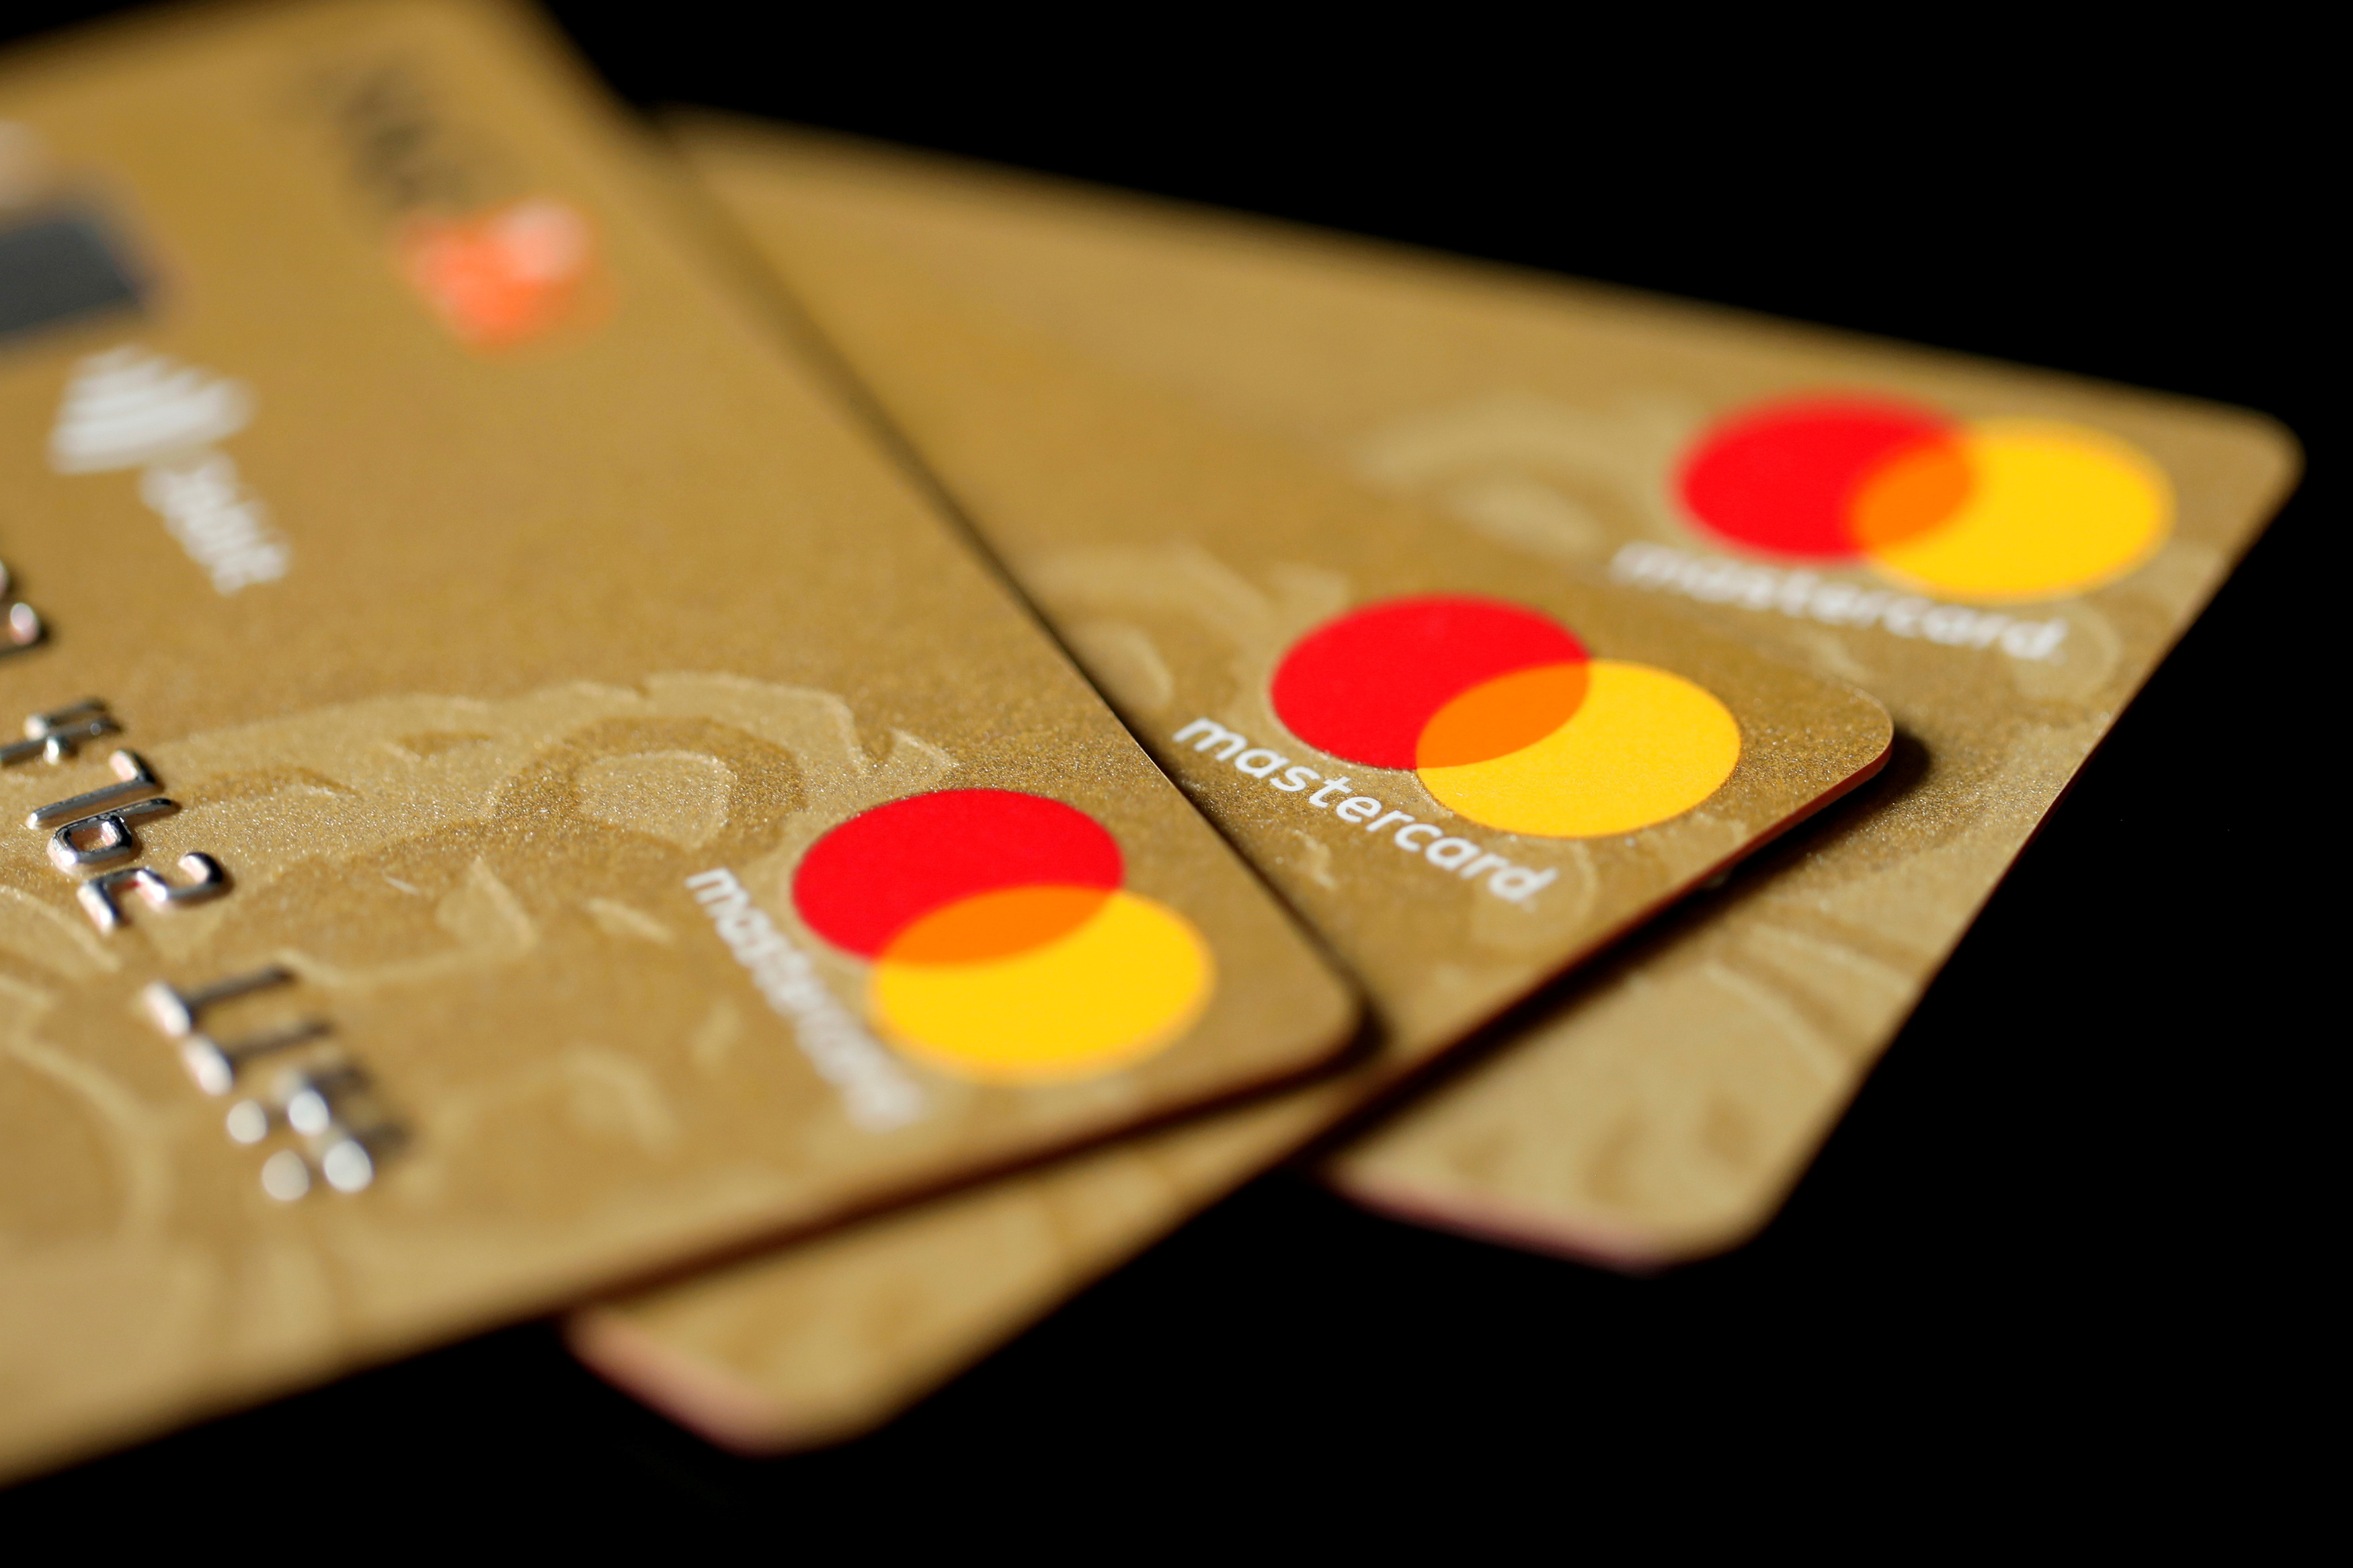 Mastercard Inc. credit cards are displayed in this picture illustration taken December 8, 2017. REUTERS/Benoit Tessier/Illustration